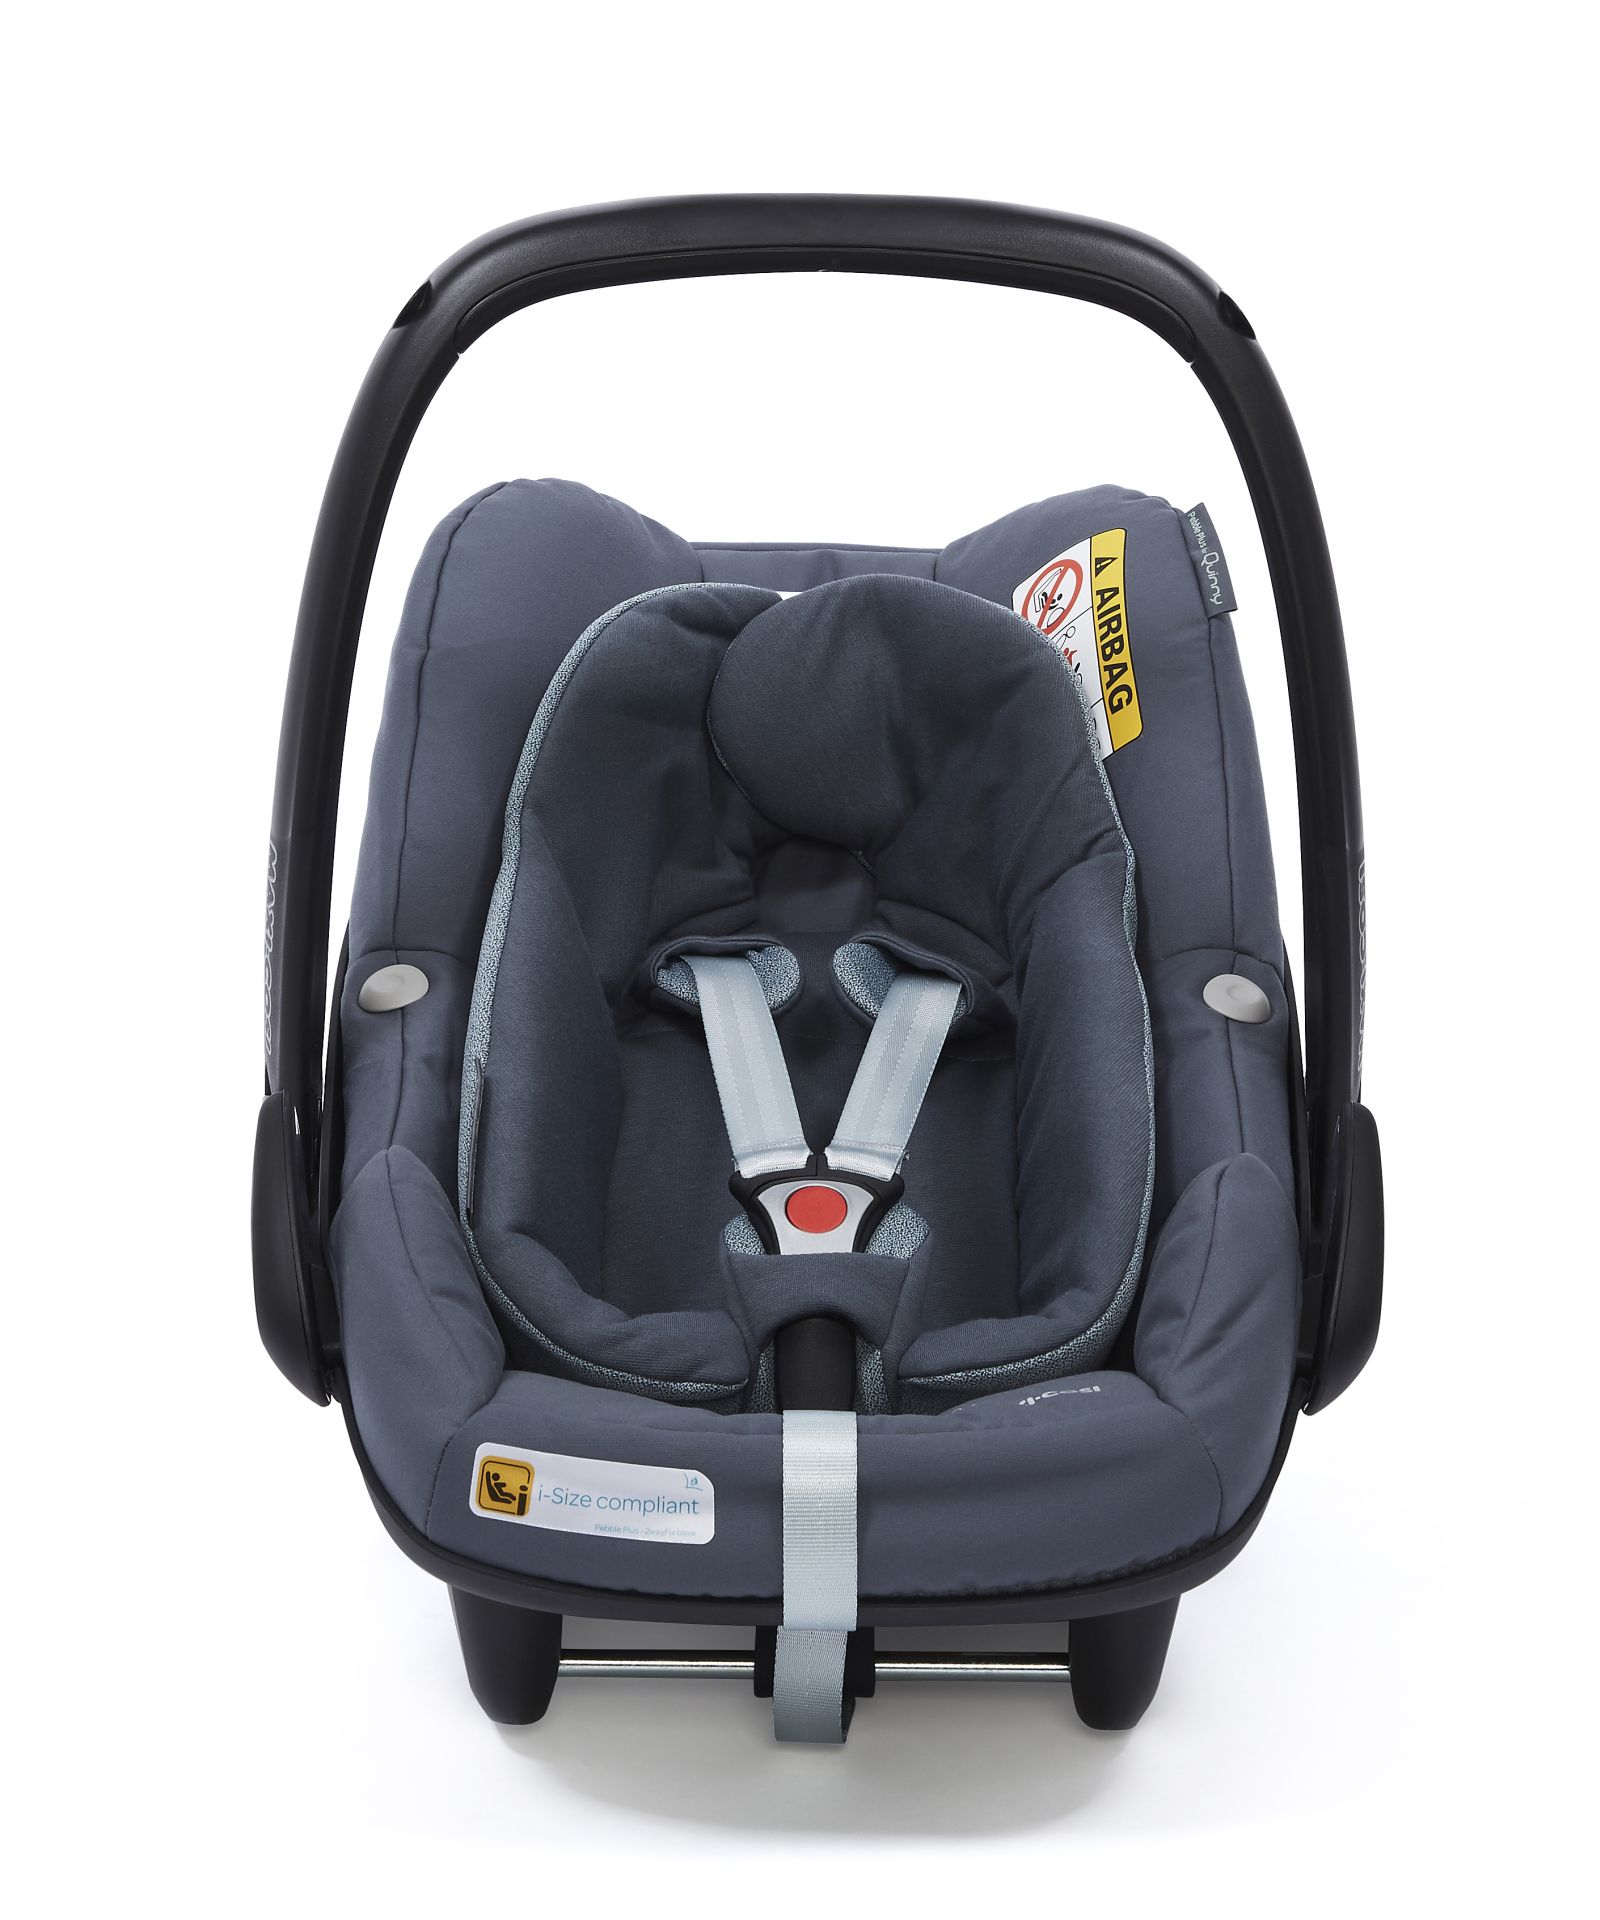 maxi cosi infant car seat pebble plus 2018 graphite buy. Black Bedroom Furniture Sets. Home Design Ideas